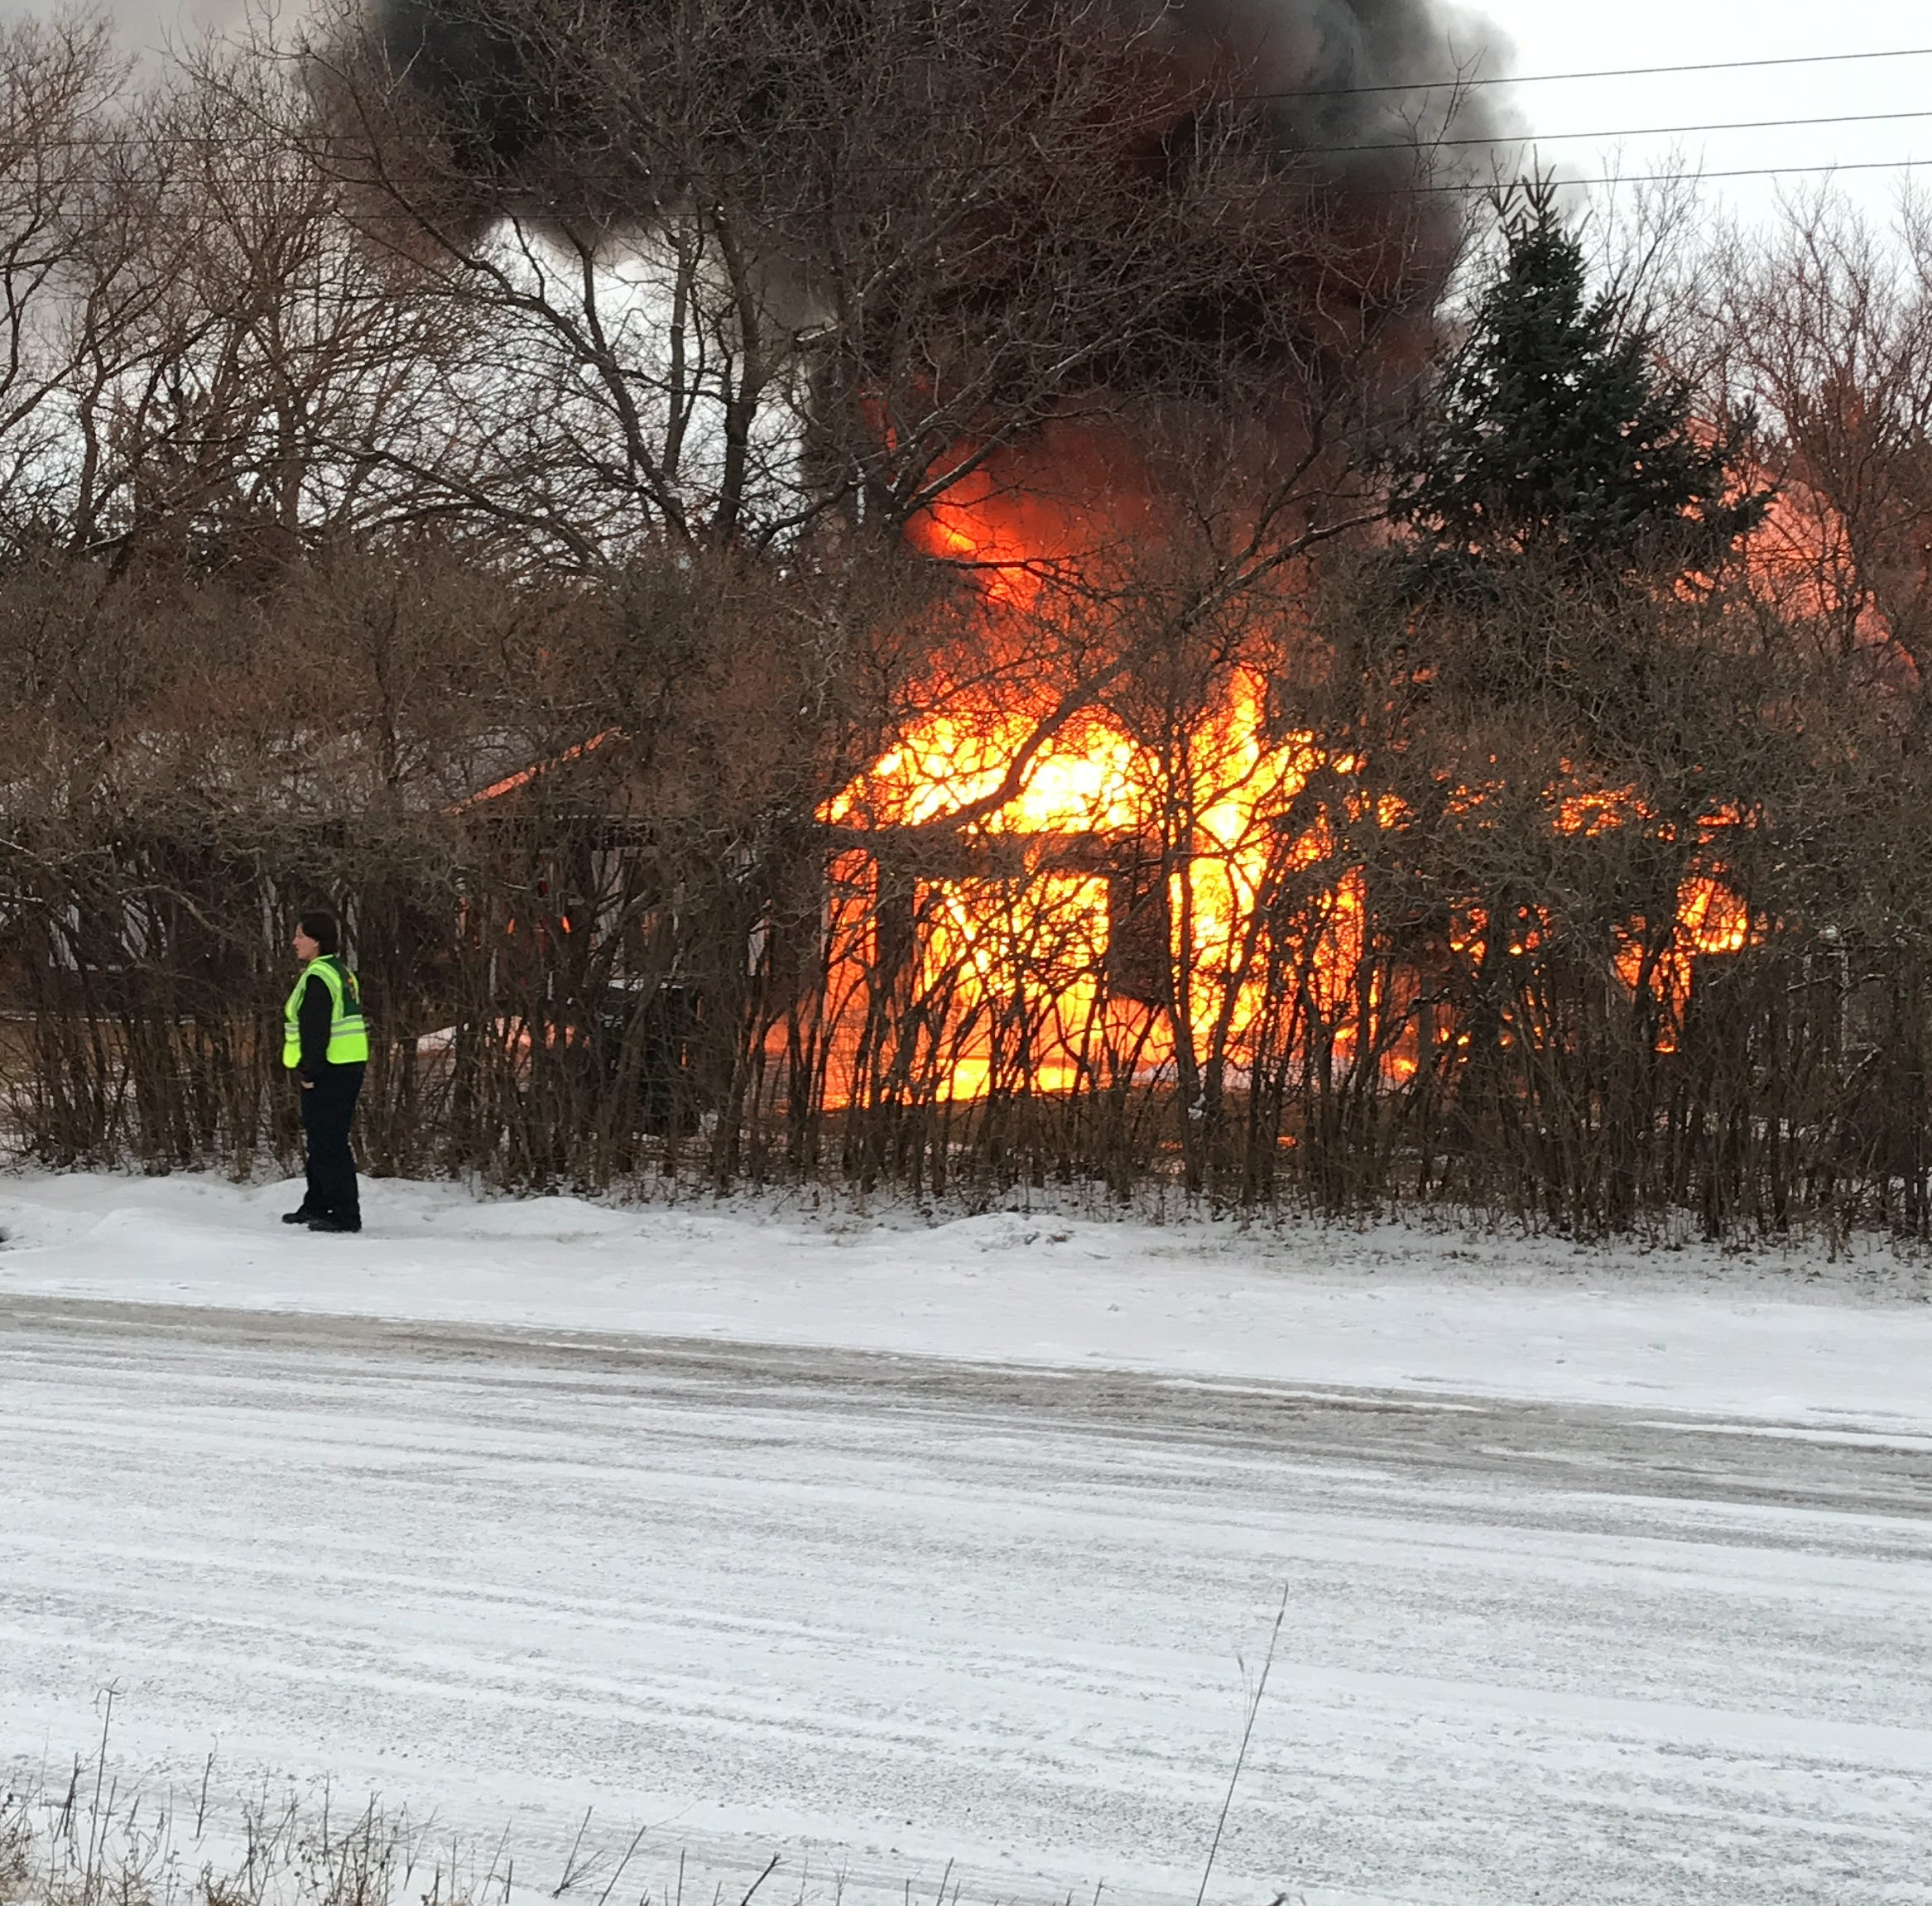 Large fire erupts near State 54 in Plover, building engulfed